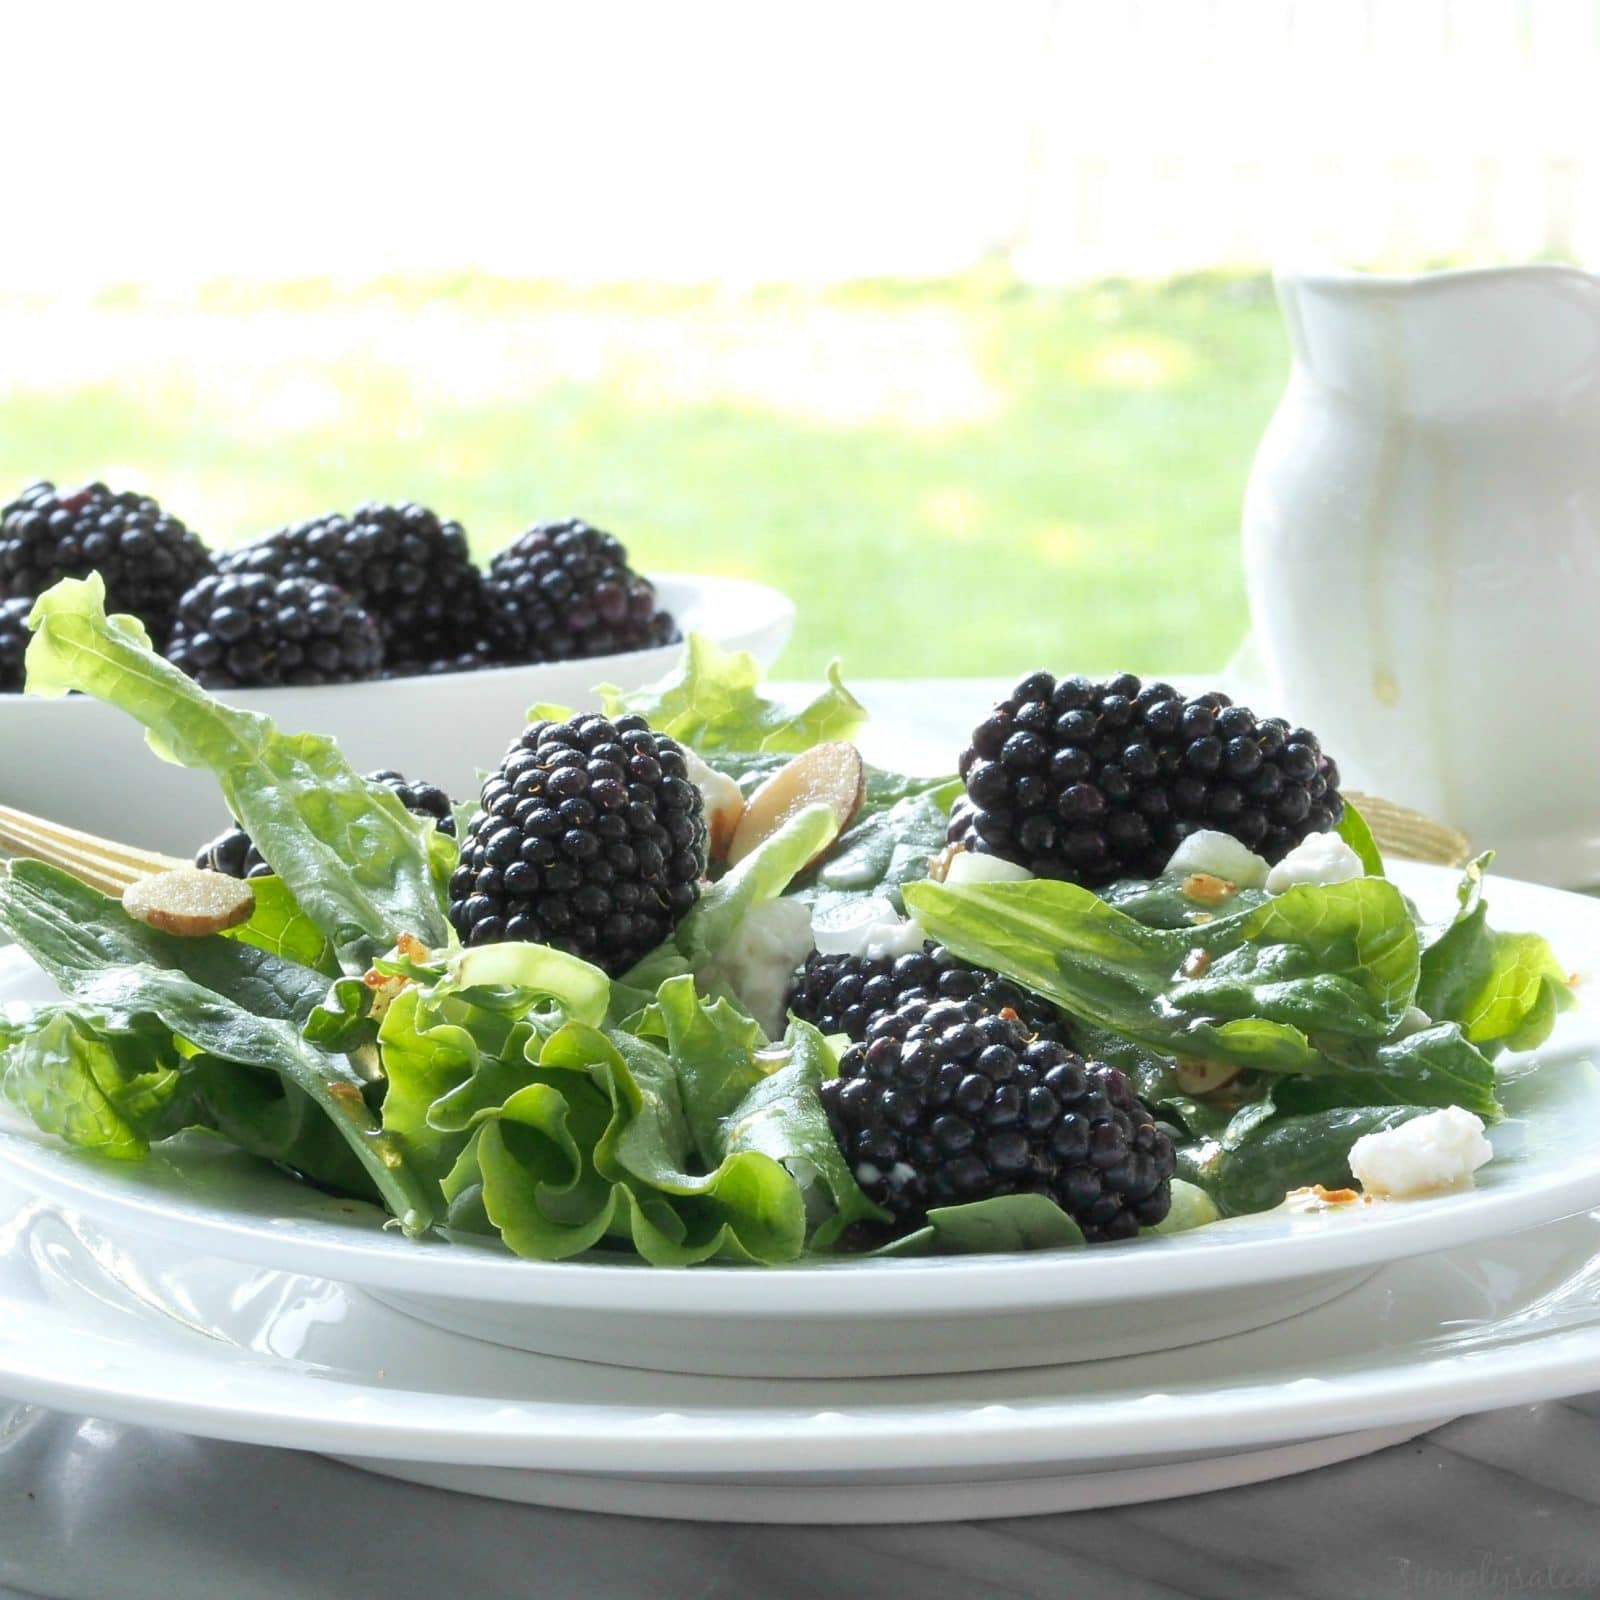 Blackberries & Greens Salad - a fantastic, healthy salad with blackberries, greens & almonds. www.simplysated.com